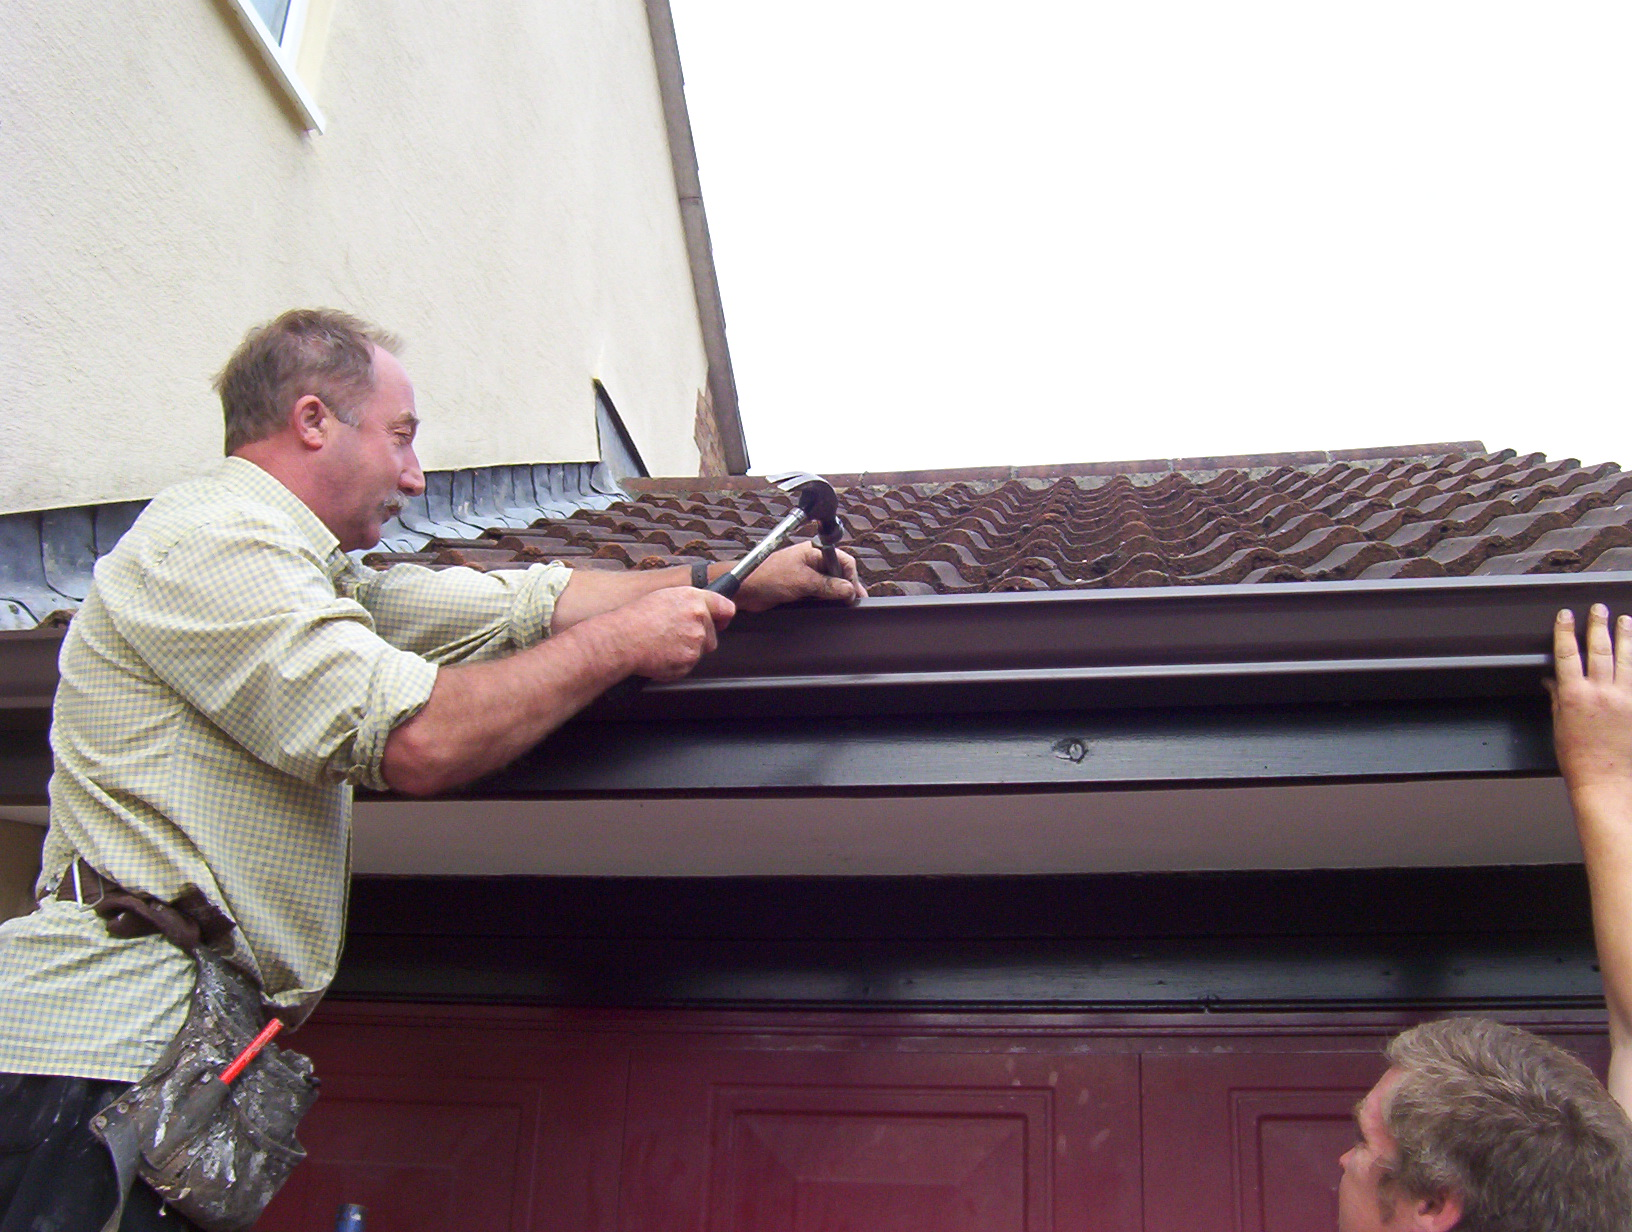 Fixing gutter to facia board